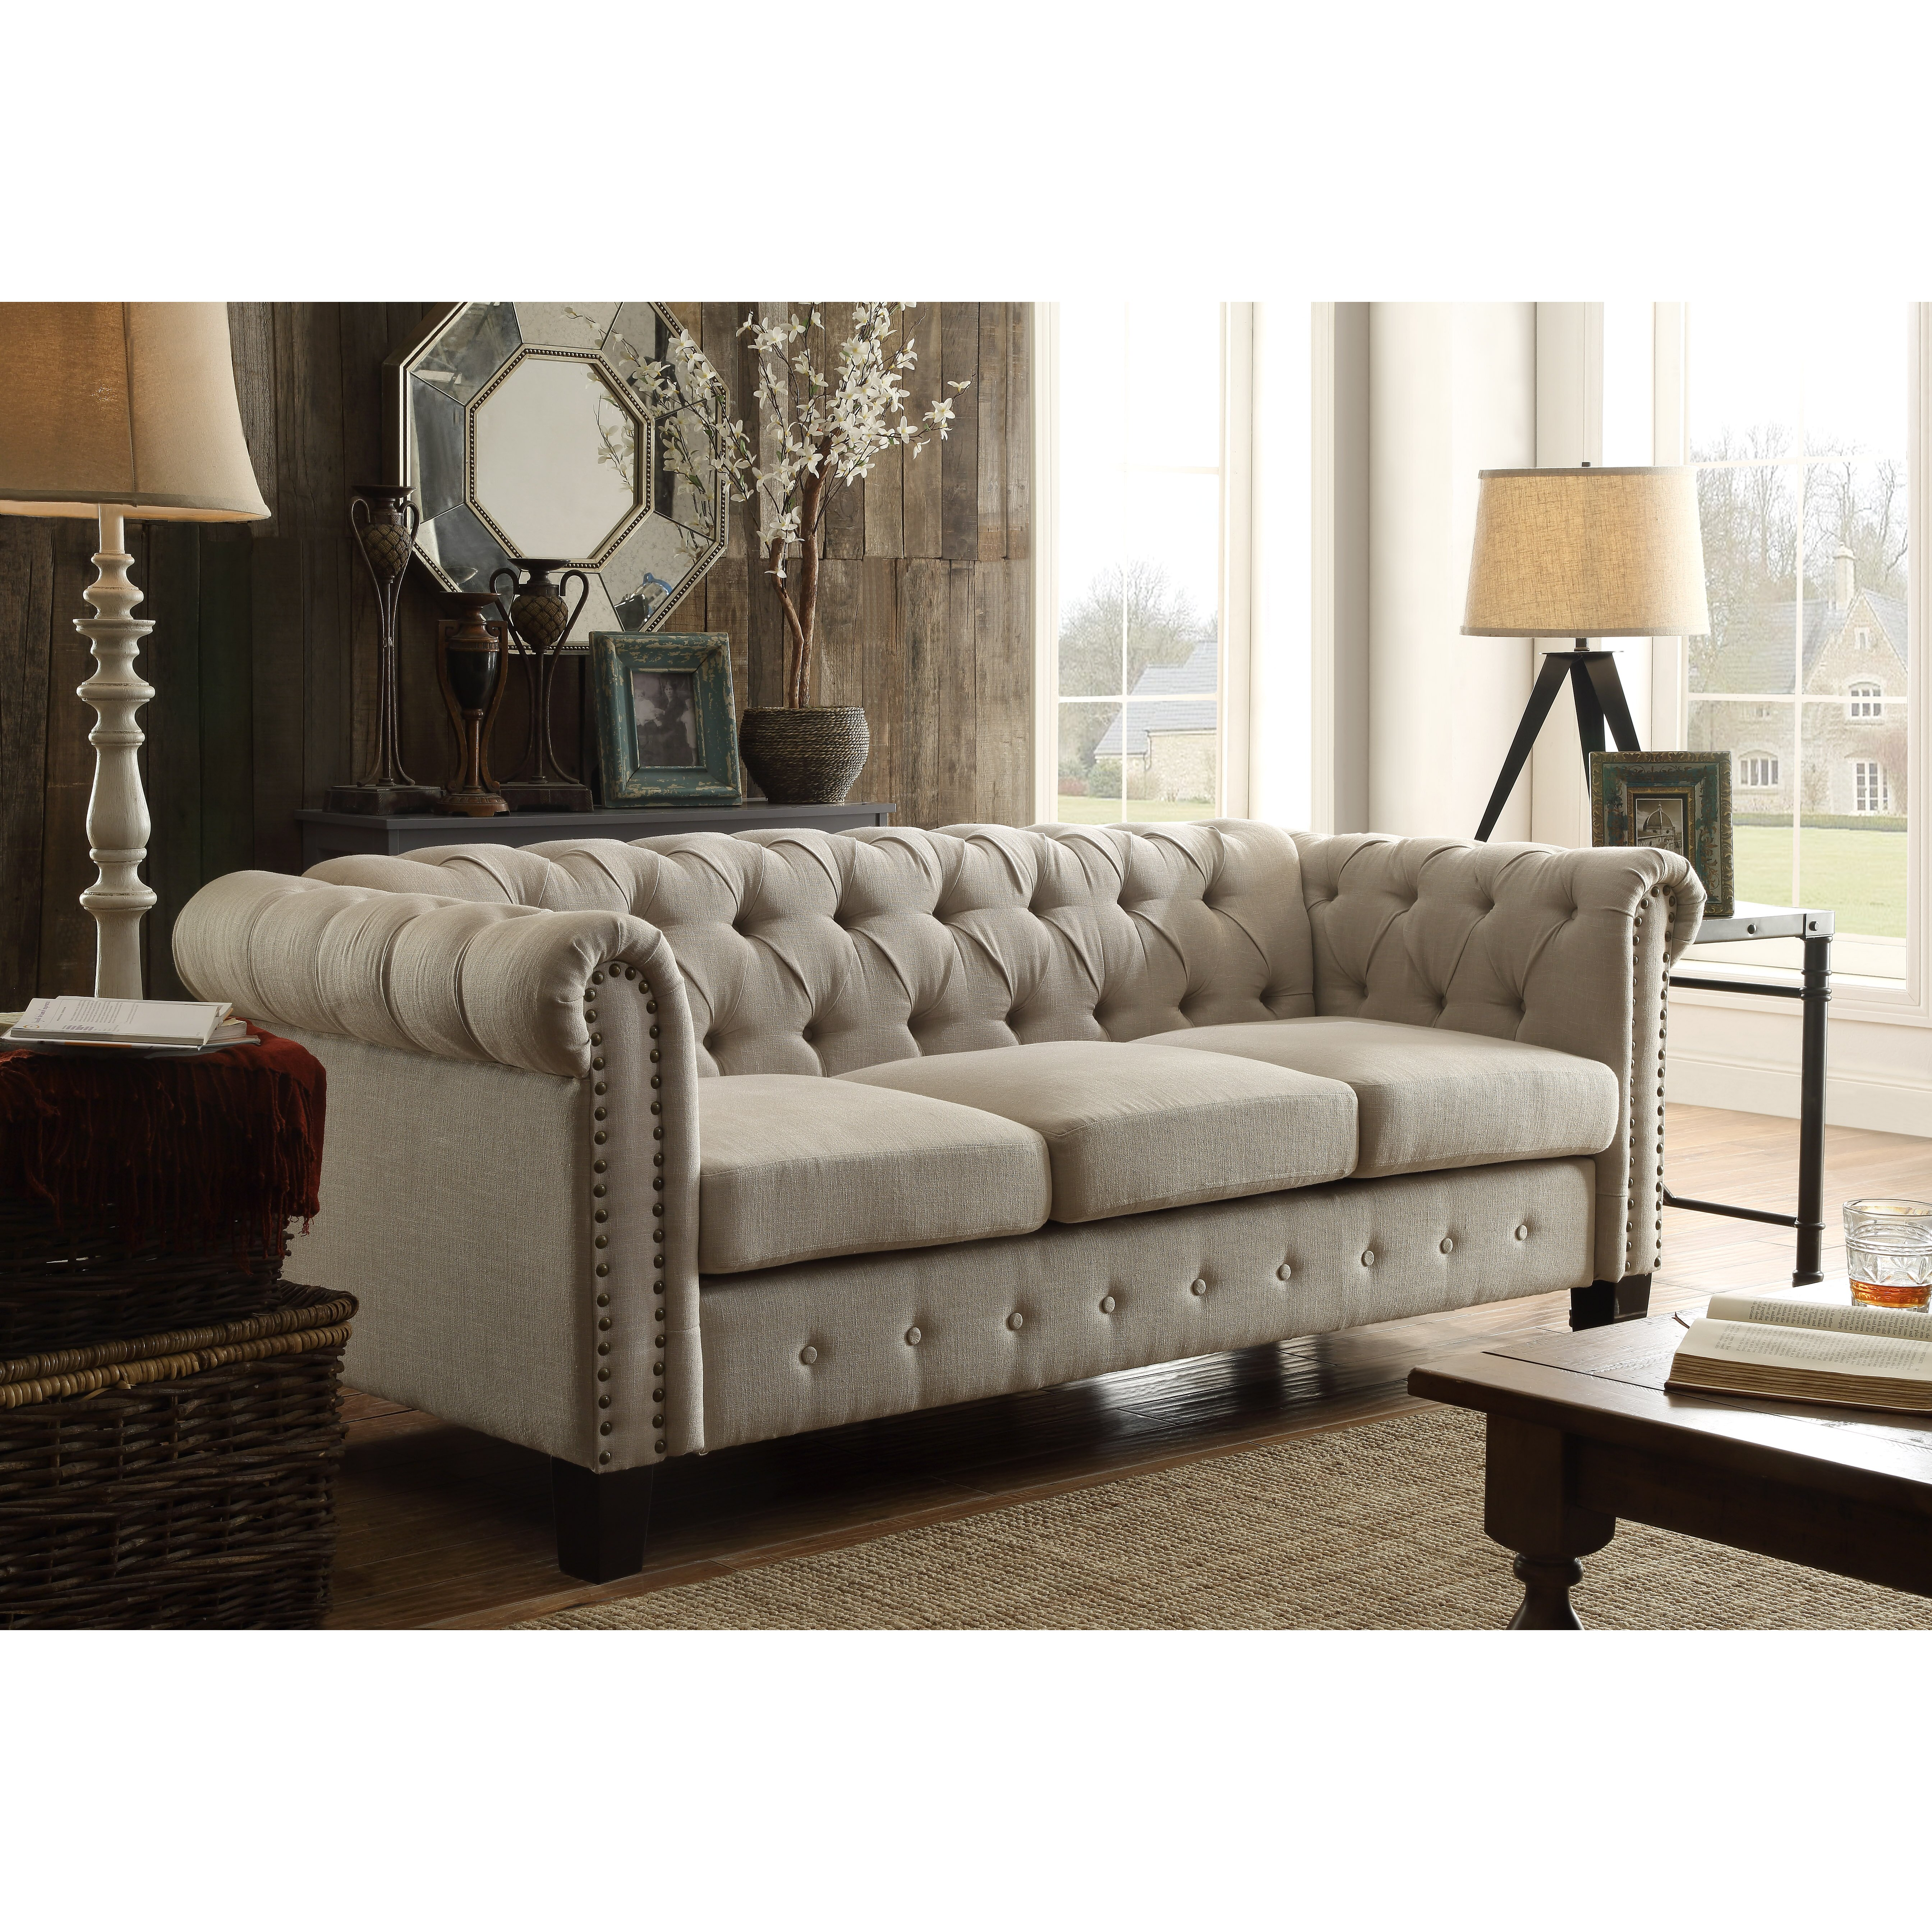 Laurel Foundry Modern Farmhouse Adeline Chesterfield Sofa